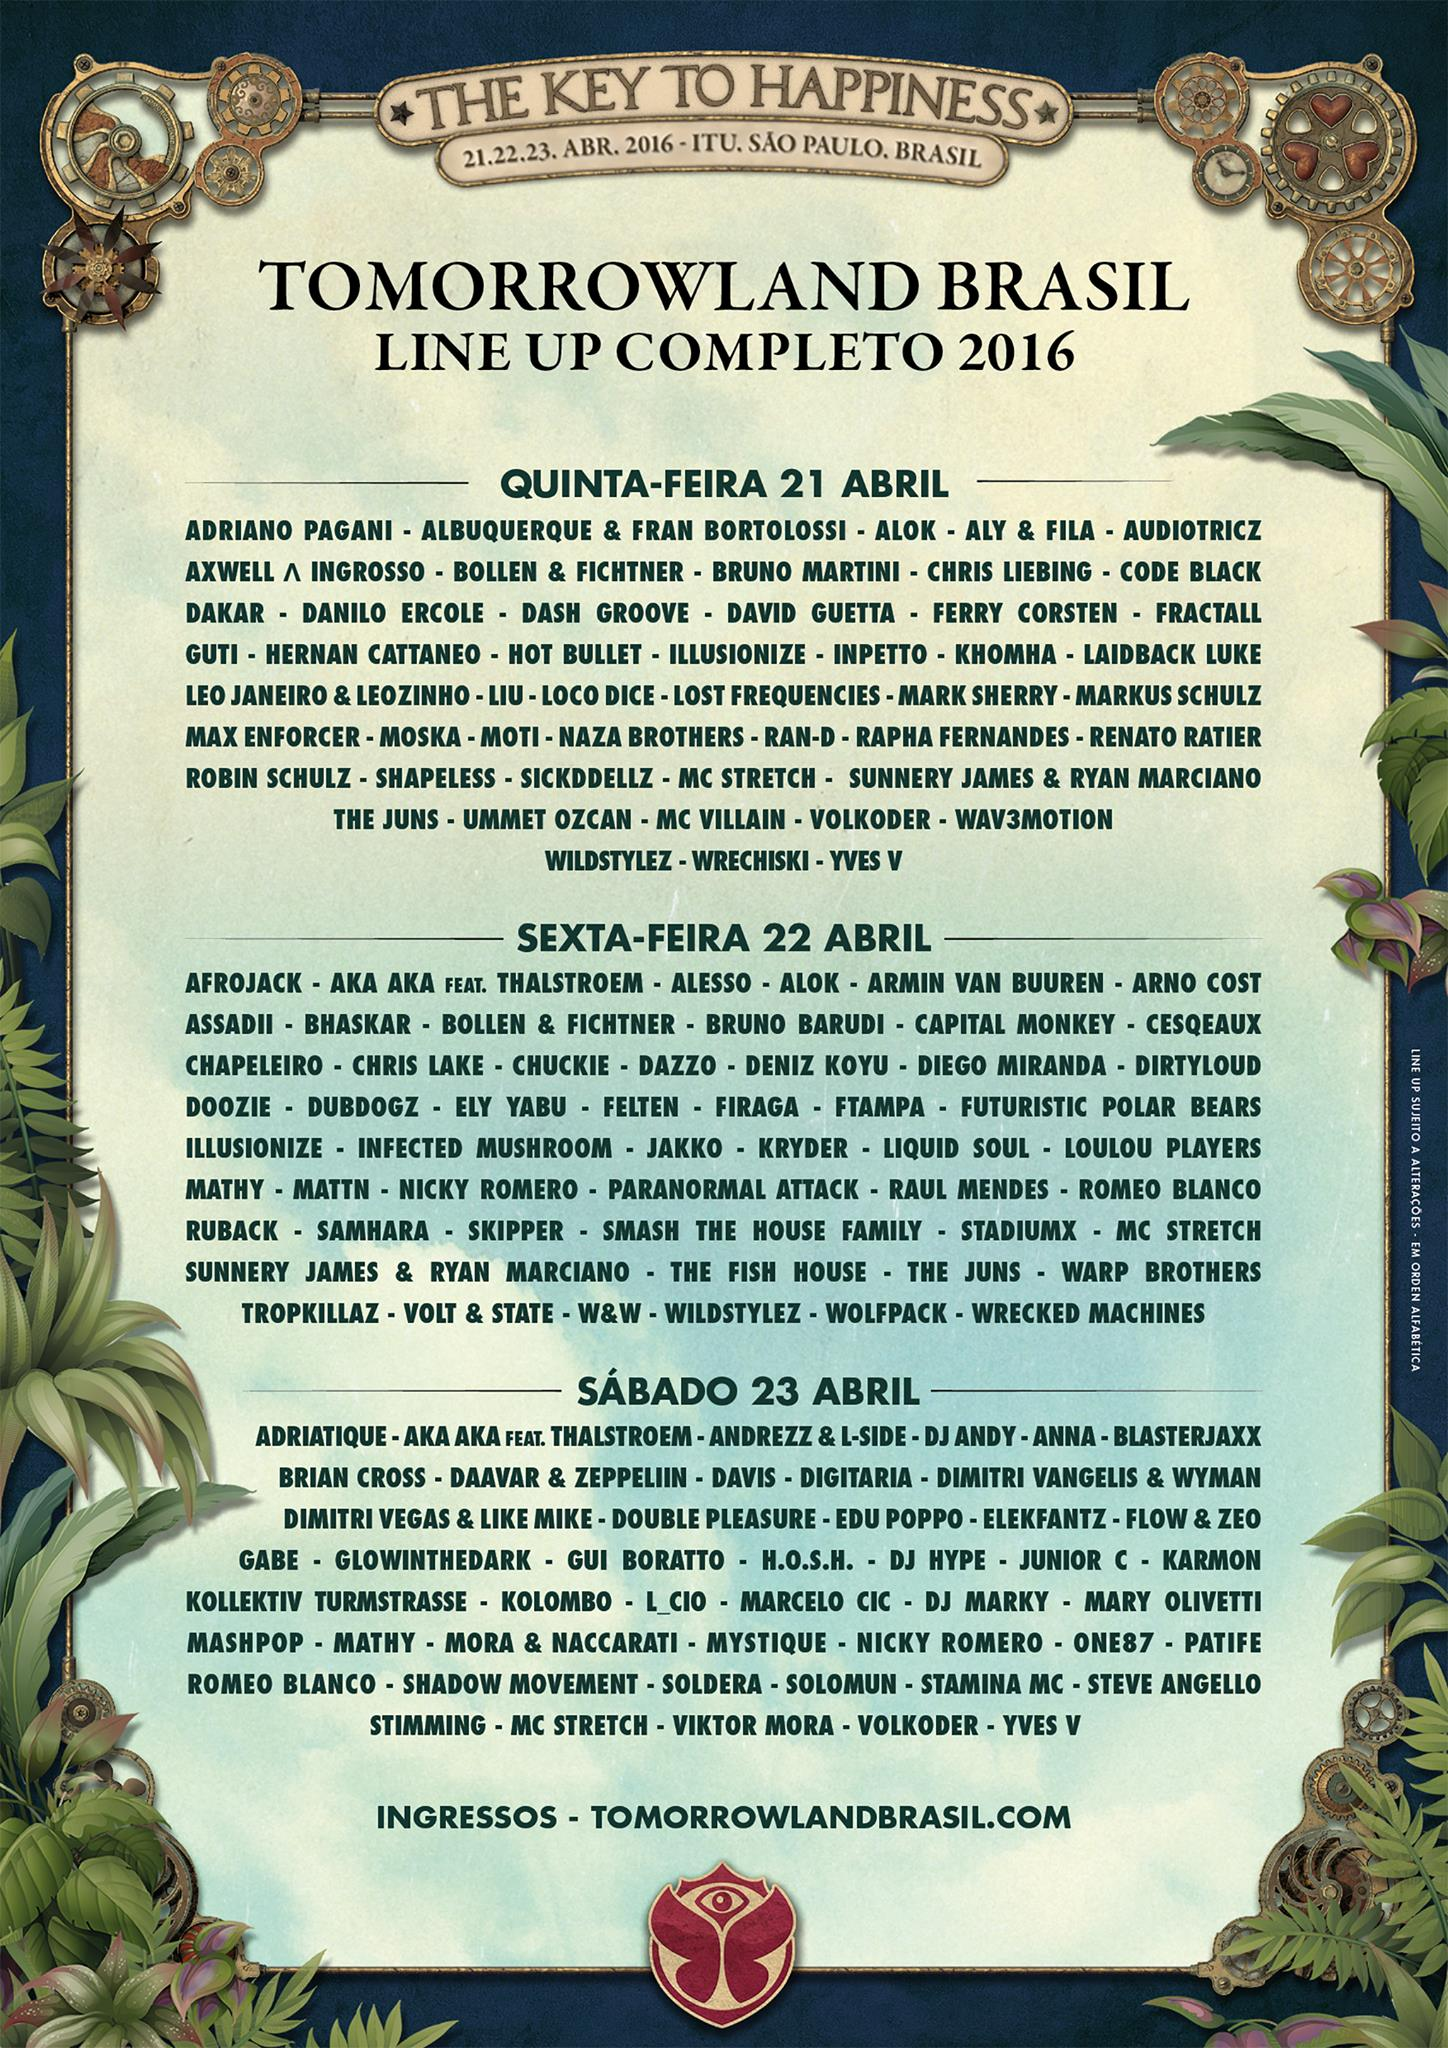 Line-up completo Tomorrowland Brasil